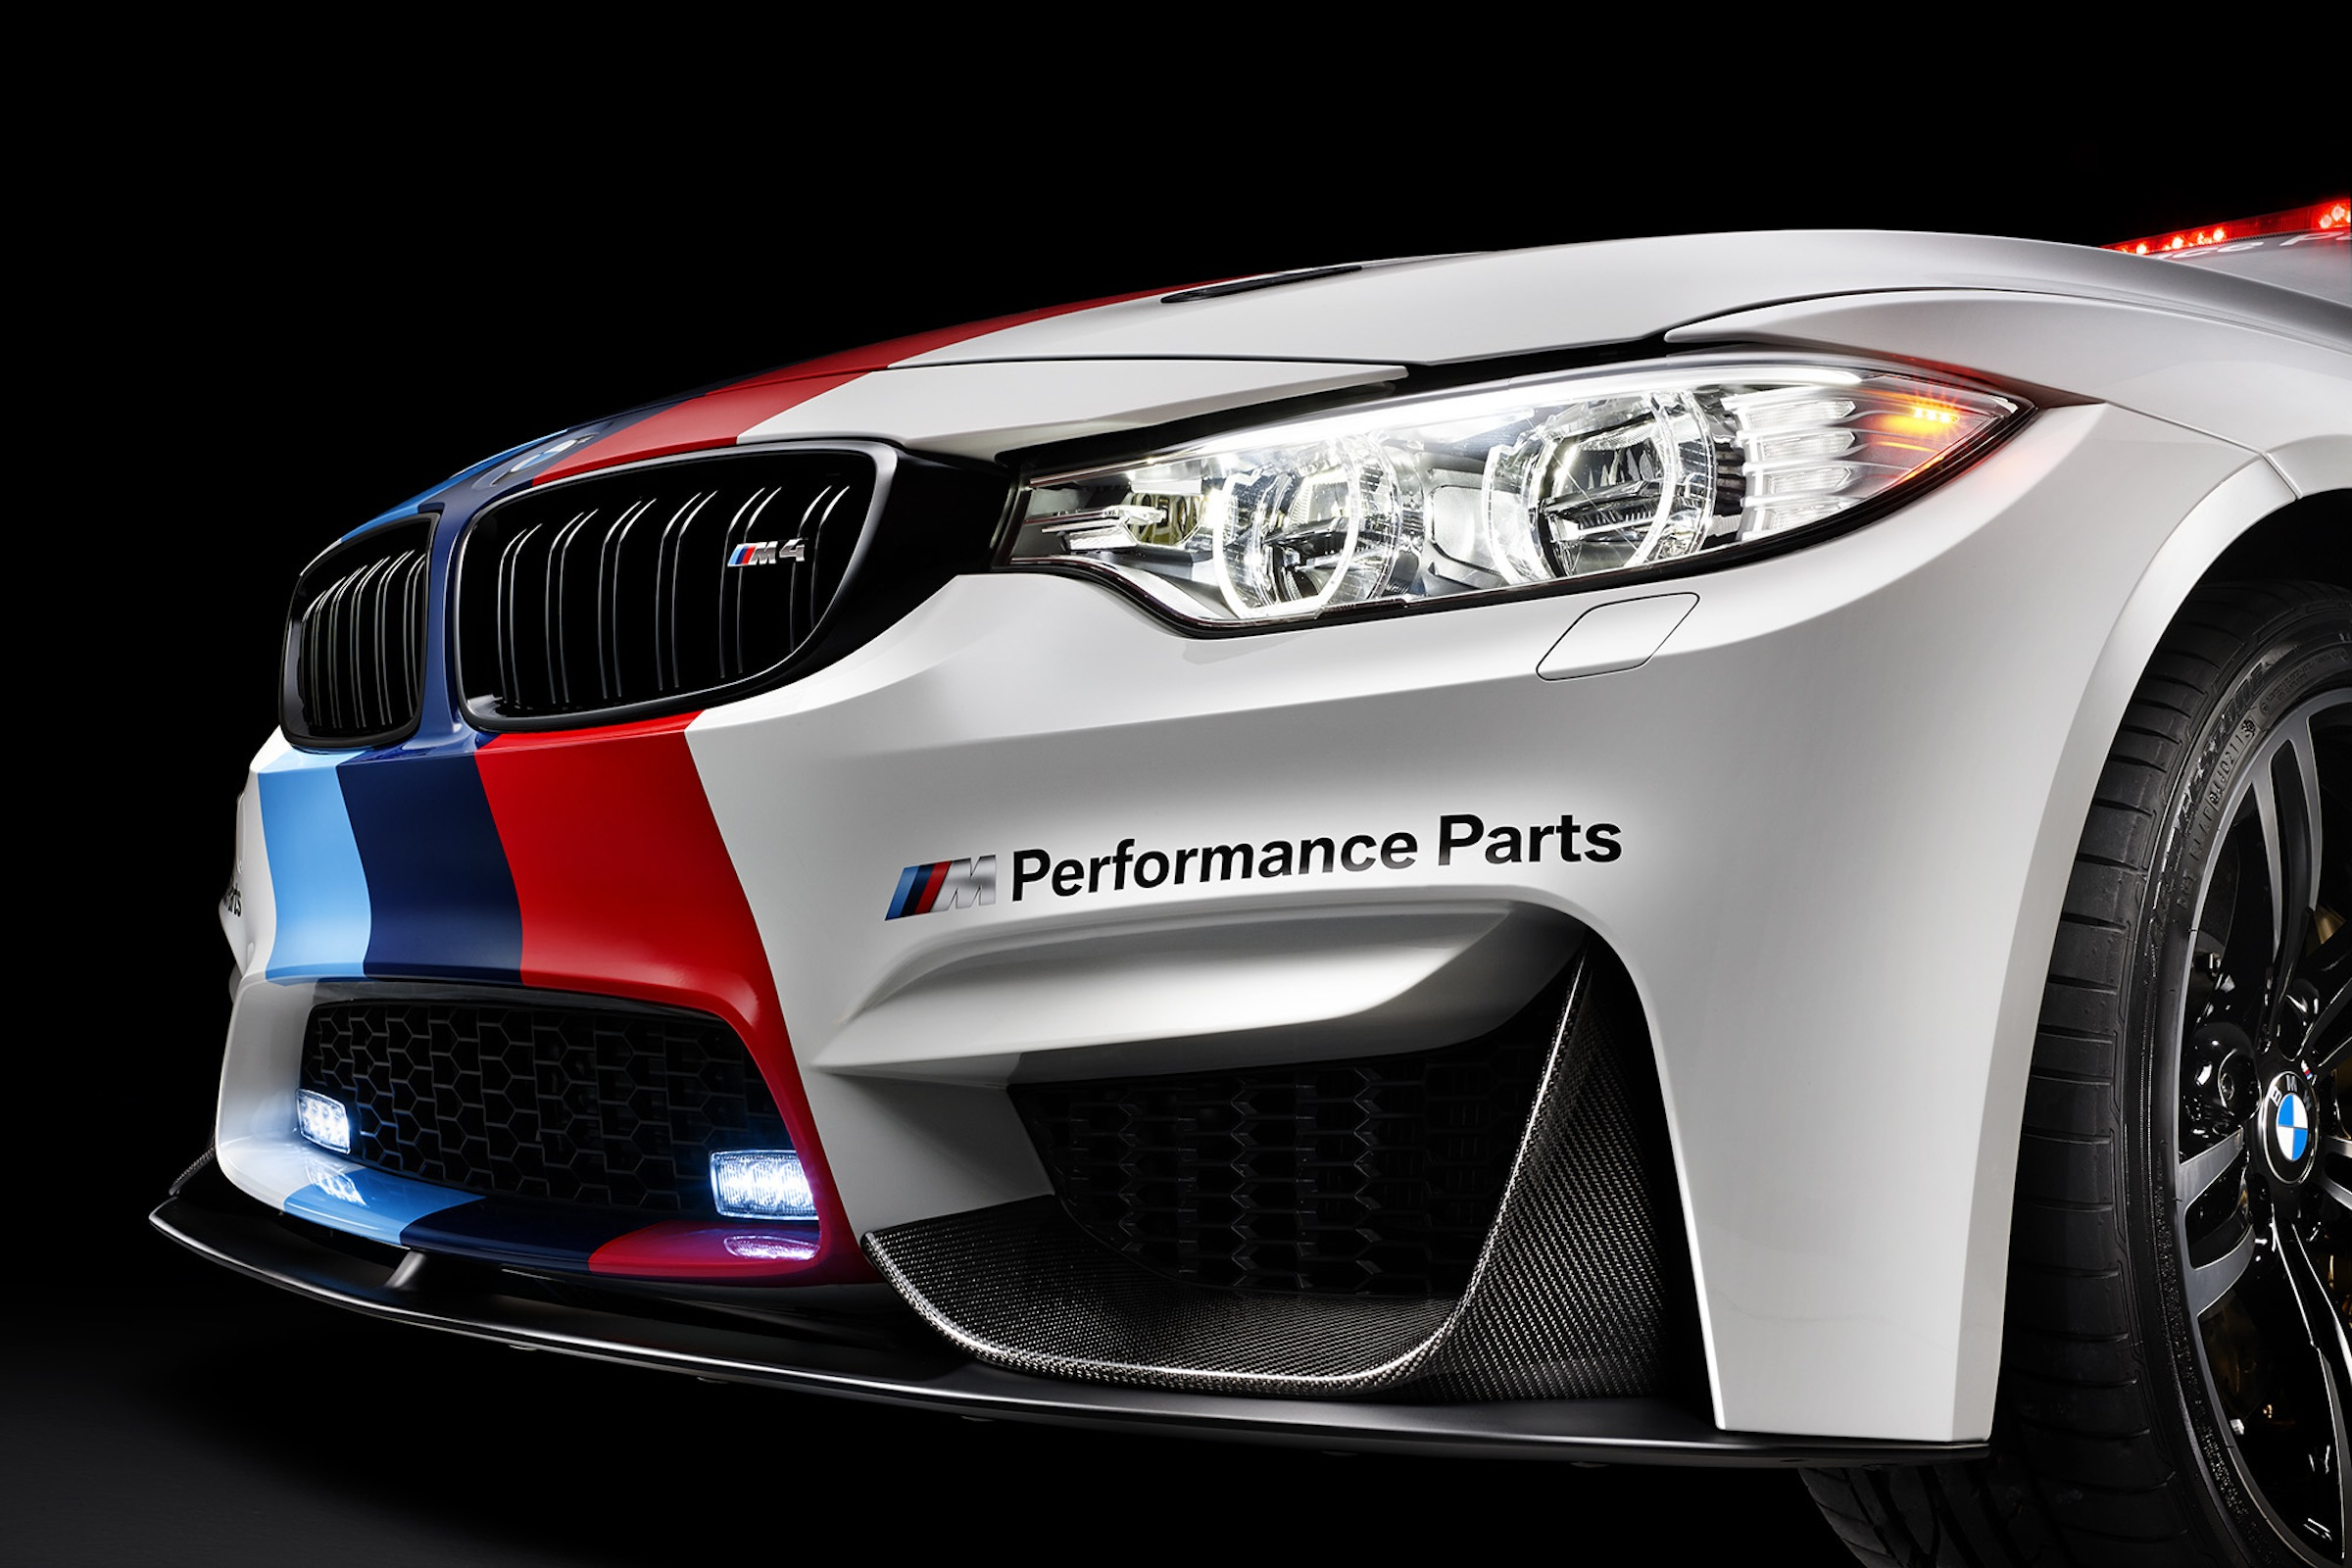 M4 Performance Exhaust Bmw M4 Motogp Safety Car W M Performance Parts M Performance